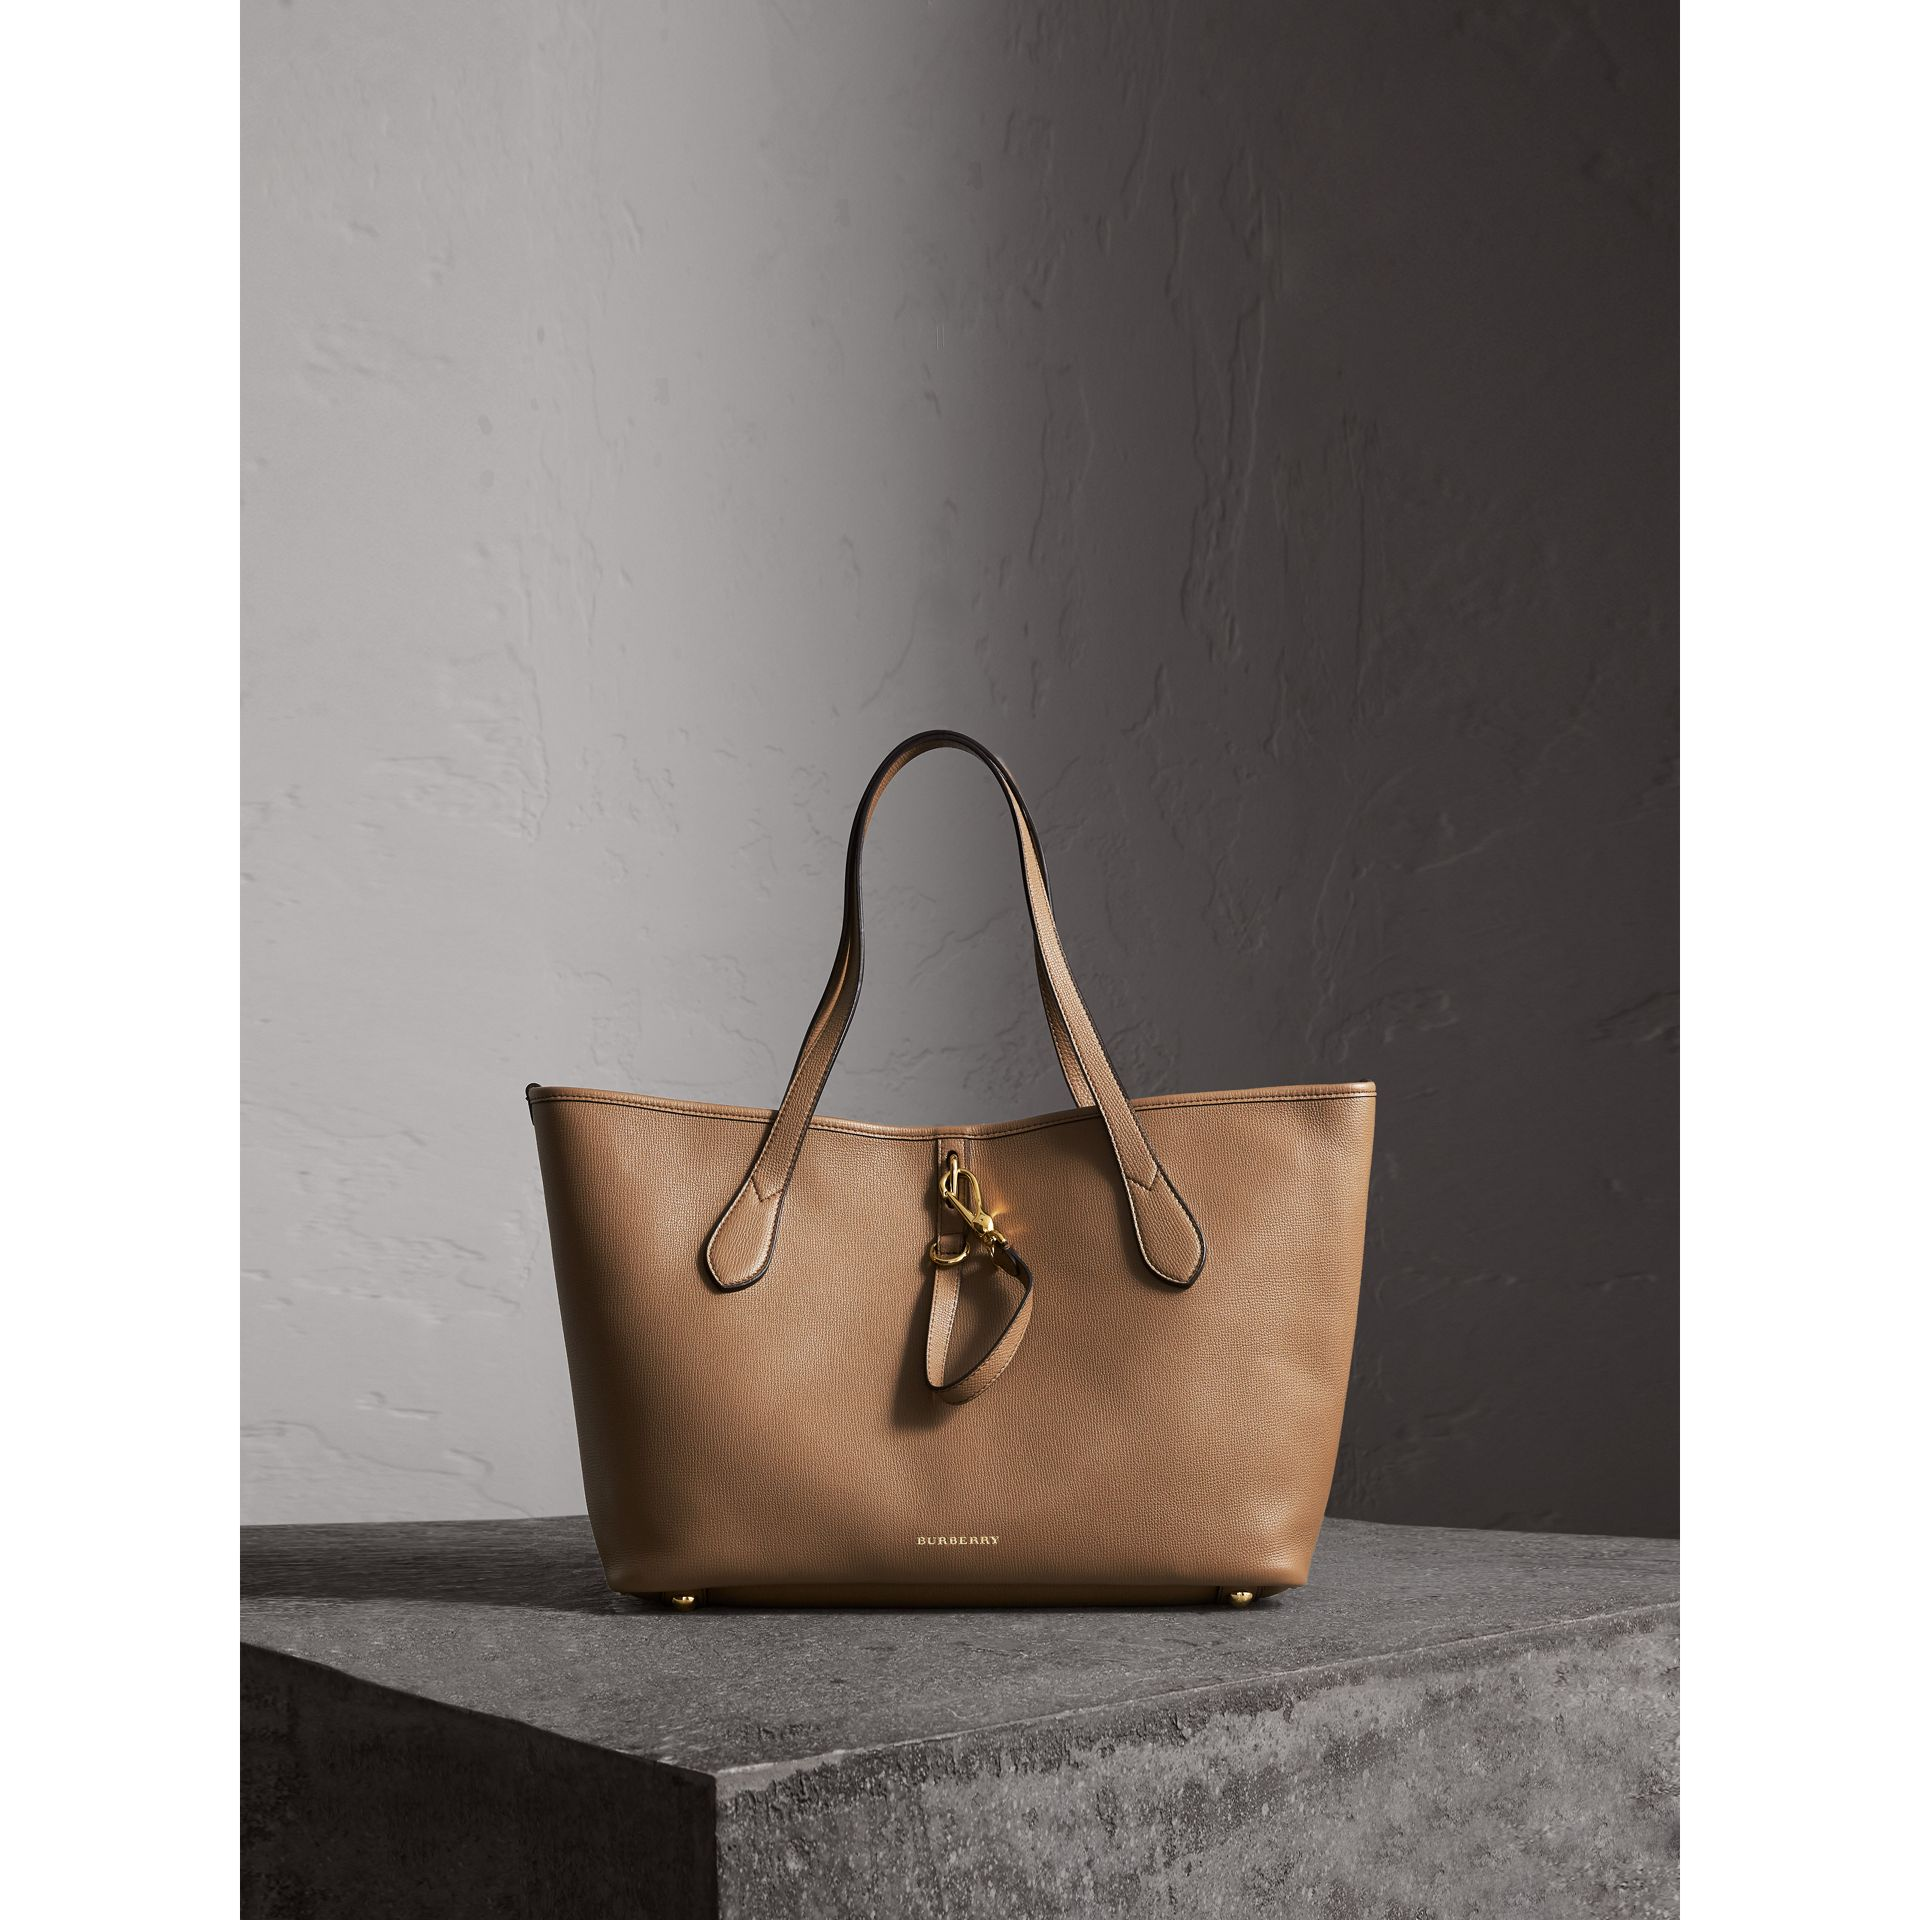 Medium Grainy Leather Tote Bag in Dark Sand - Women | Burberry - gallery image 1